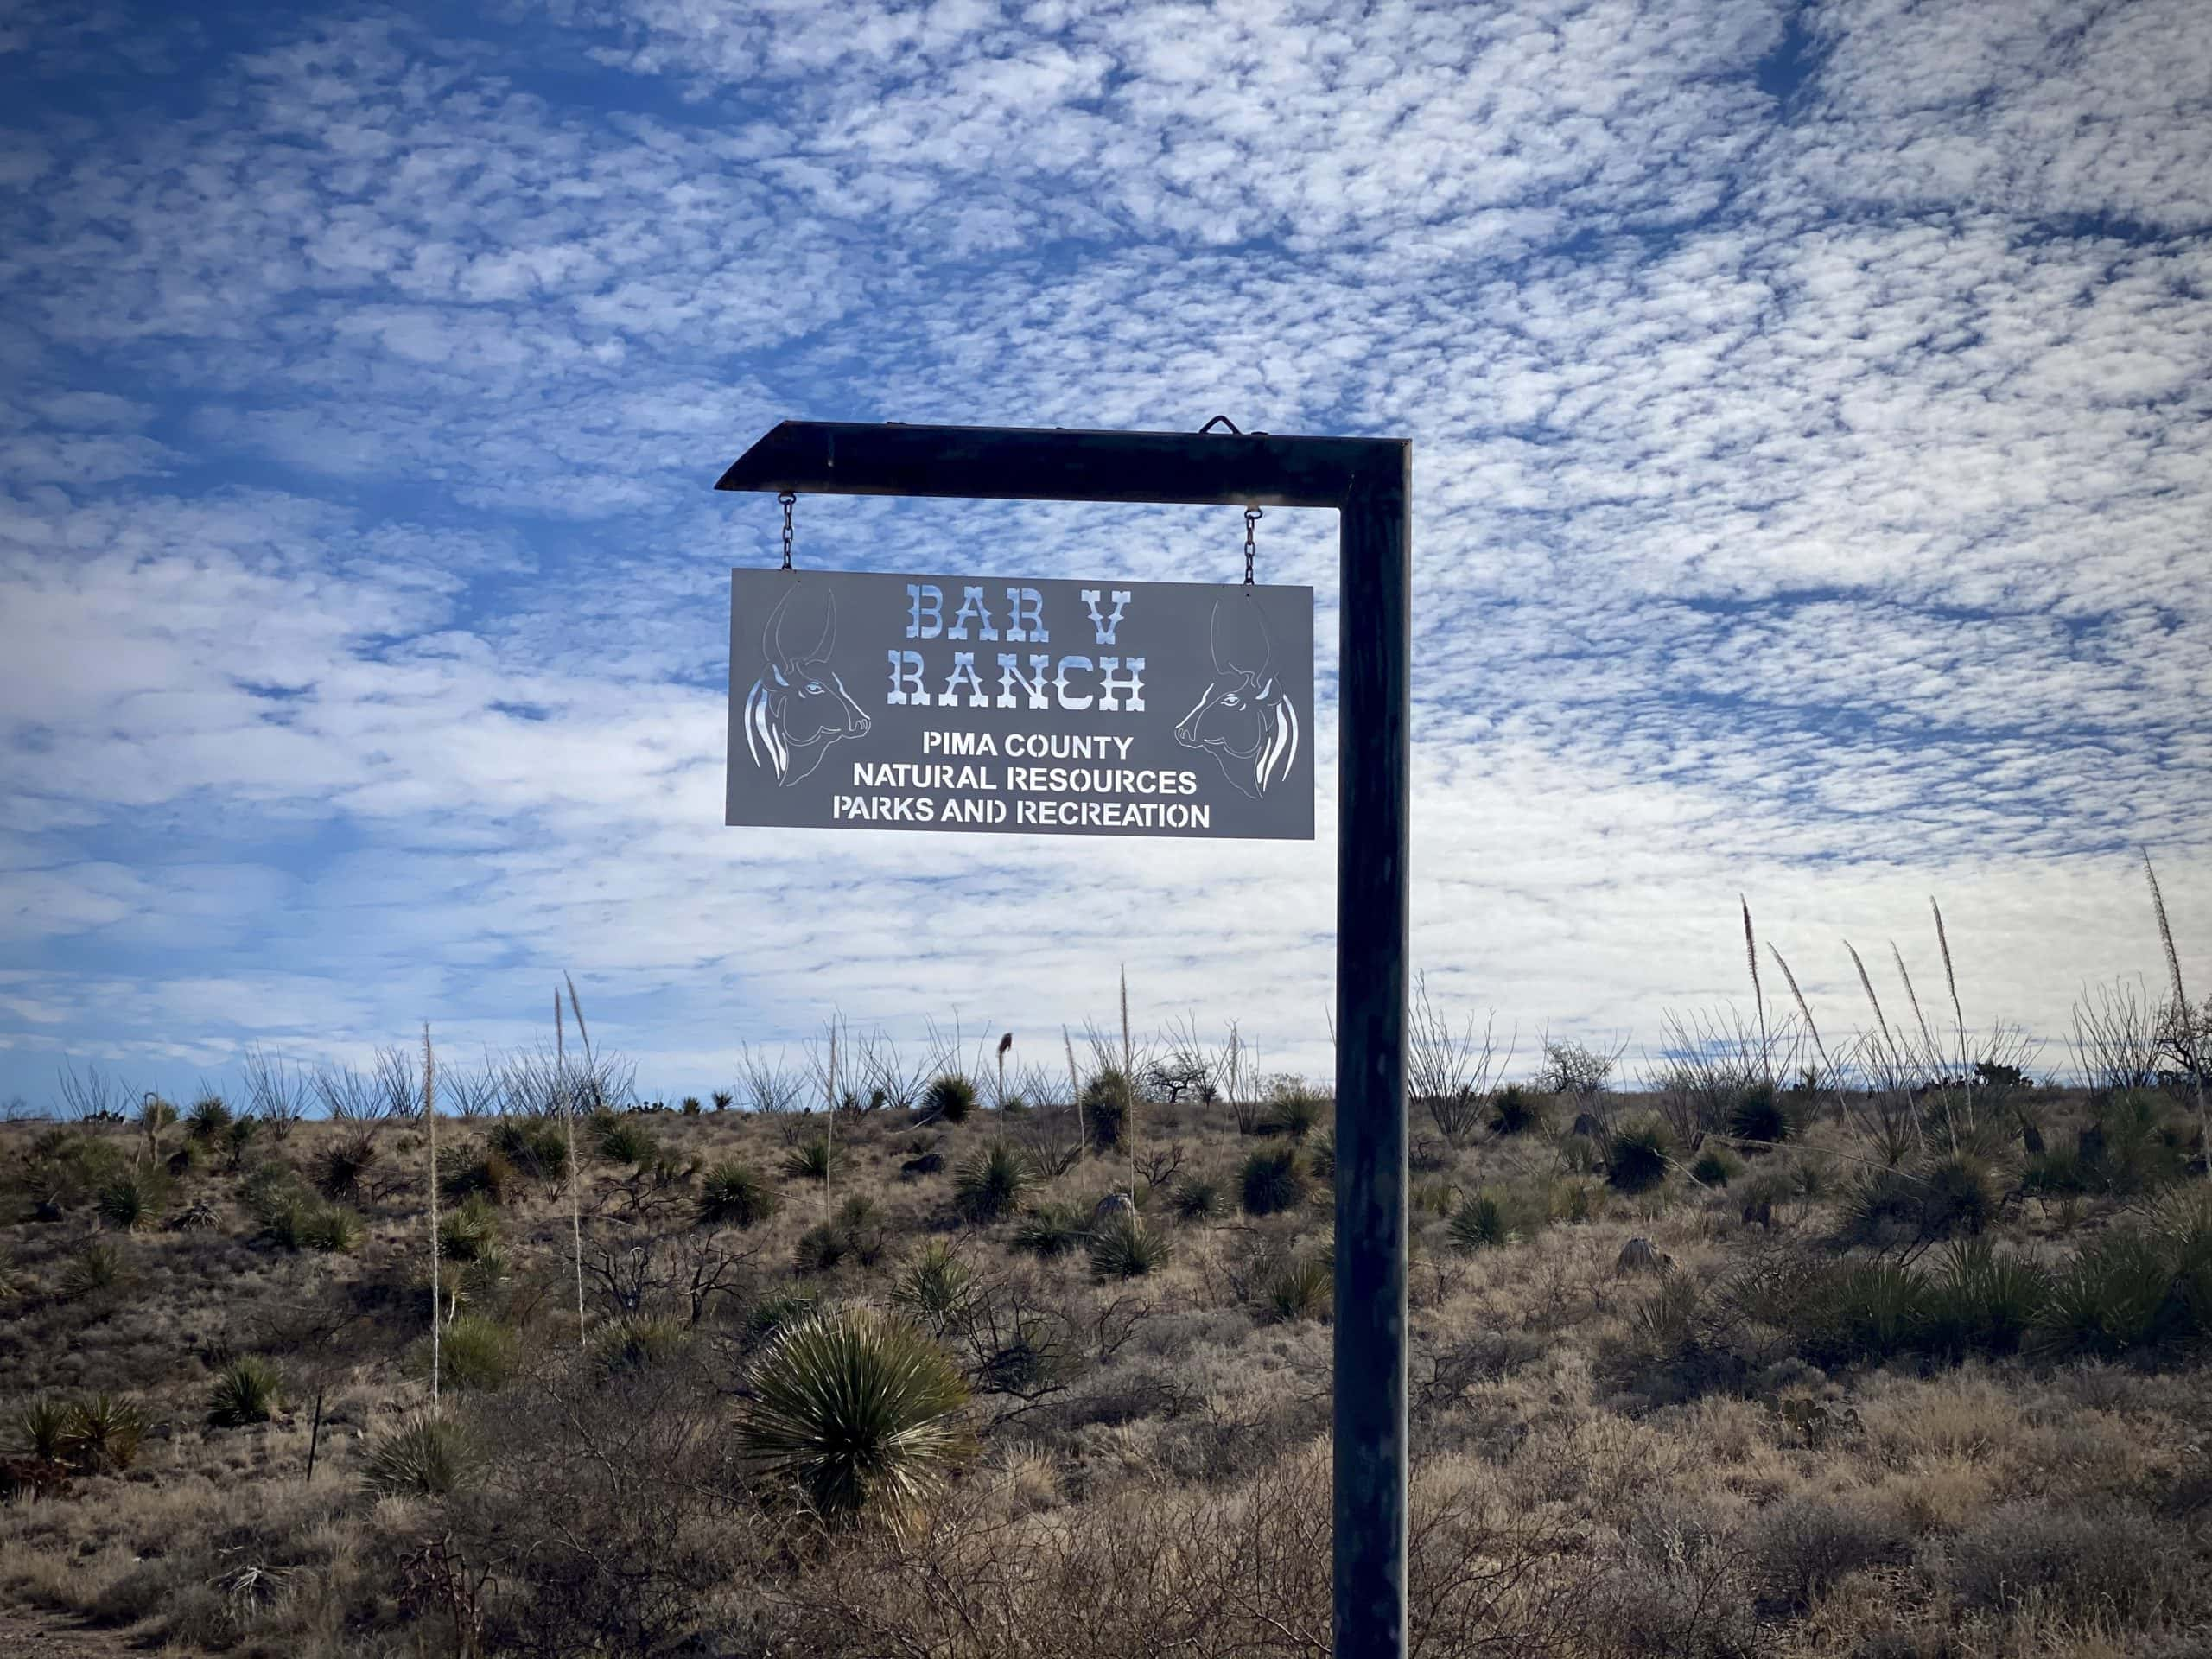 The sign to Bar V Ranch managed by Pima County in Arizona.